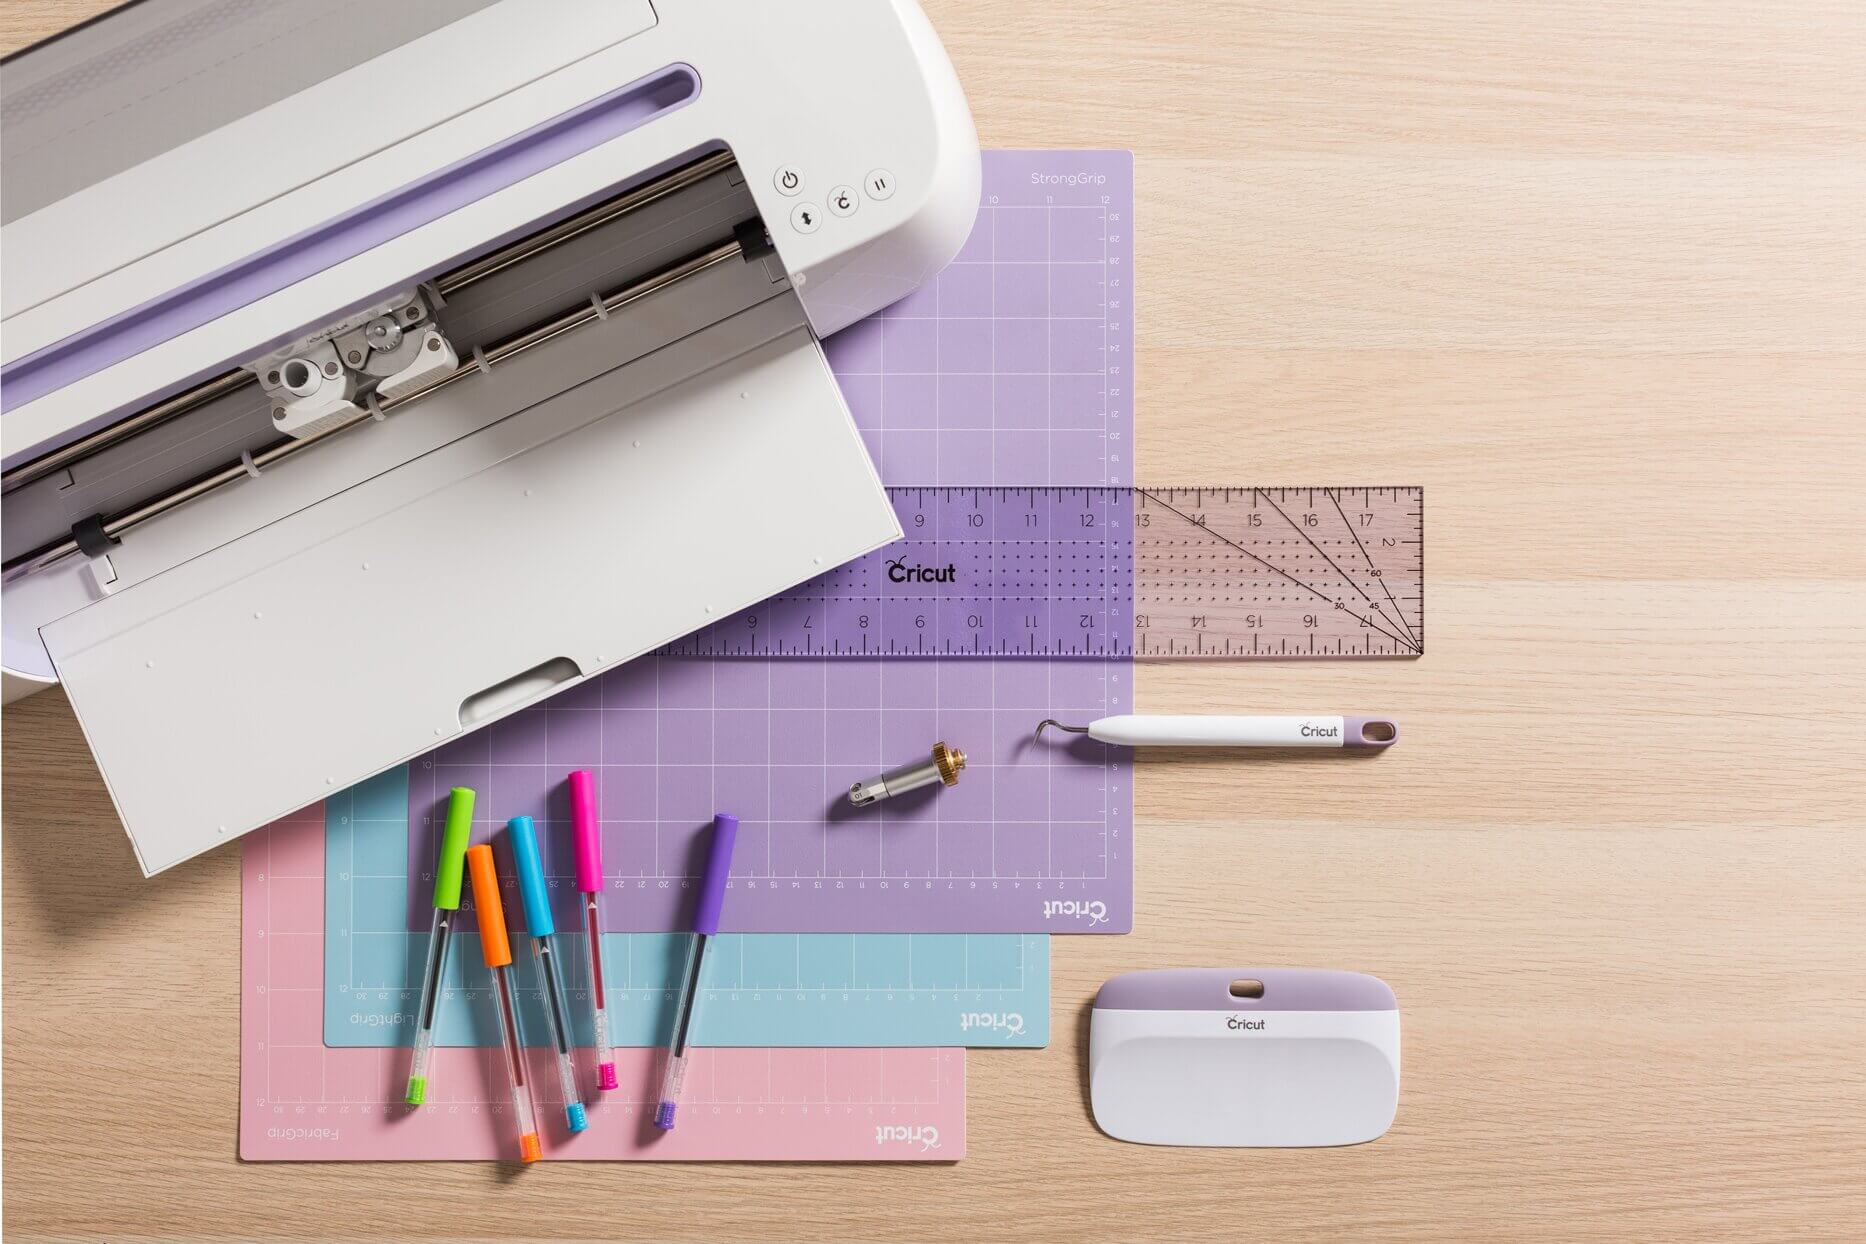 How to Clean Your Cricut Mat (And Make It Sticky Again)